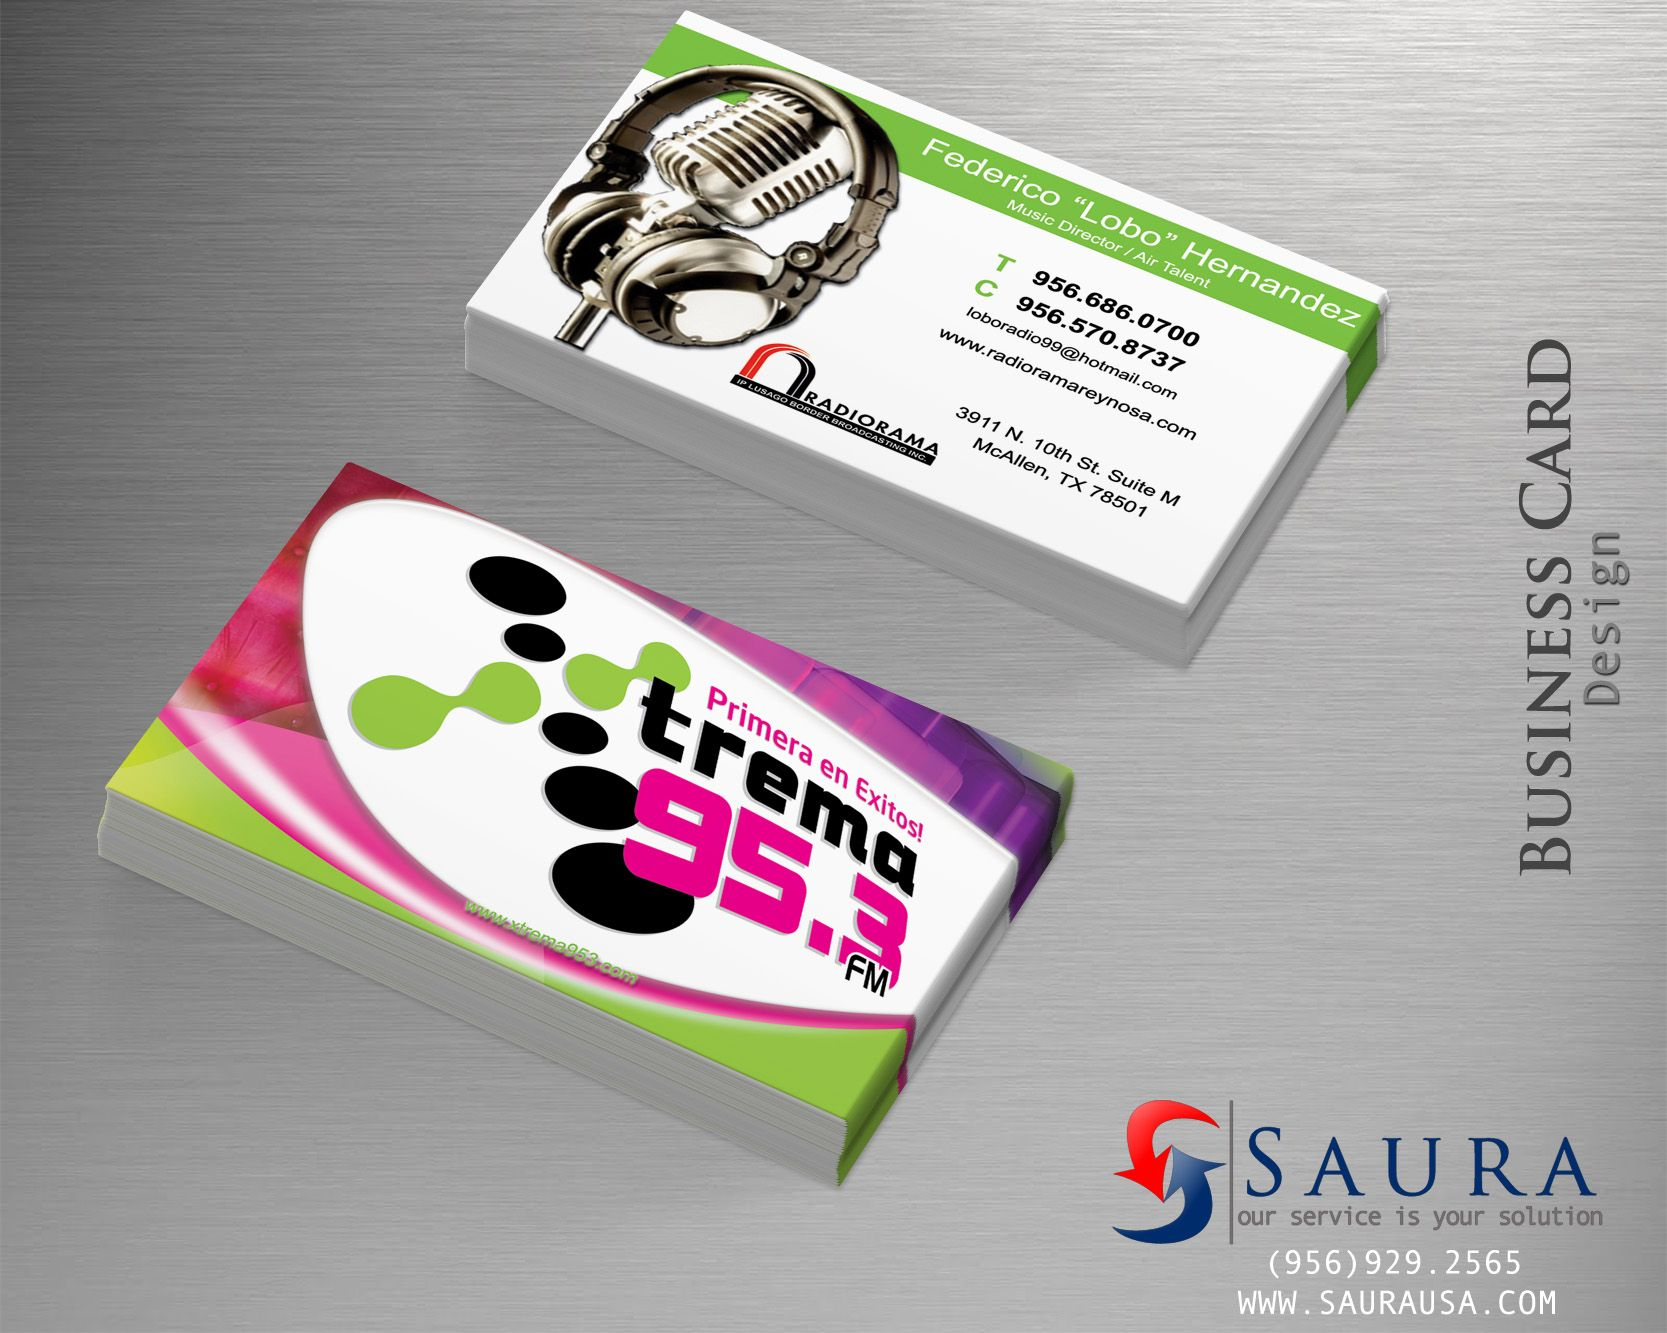 Business card design for radio station | Clients | Pinterest ...